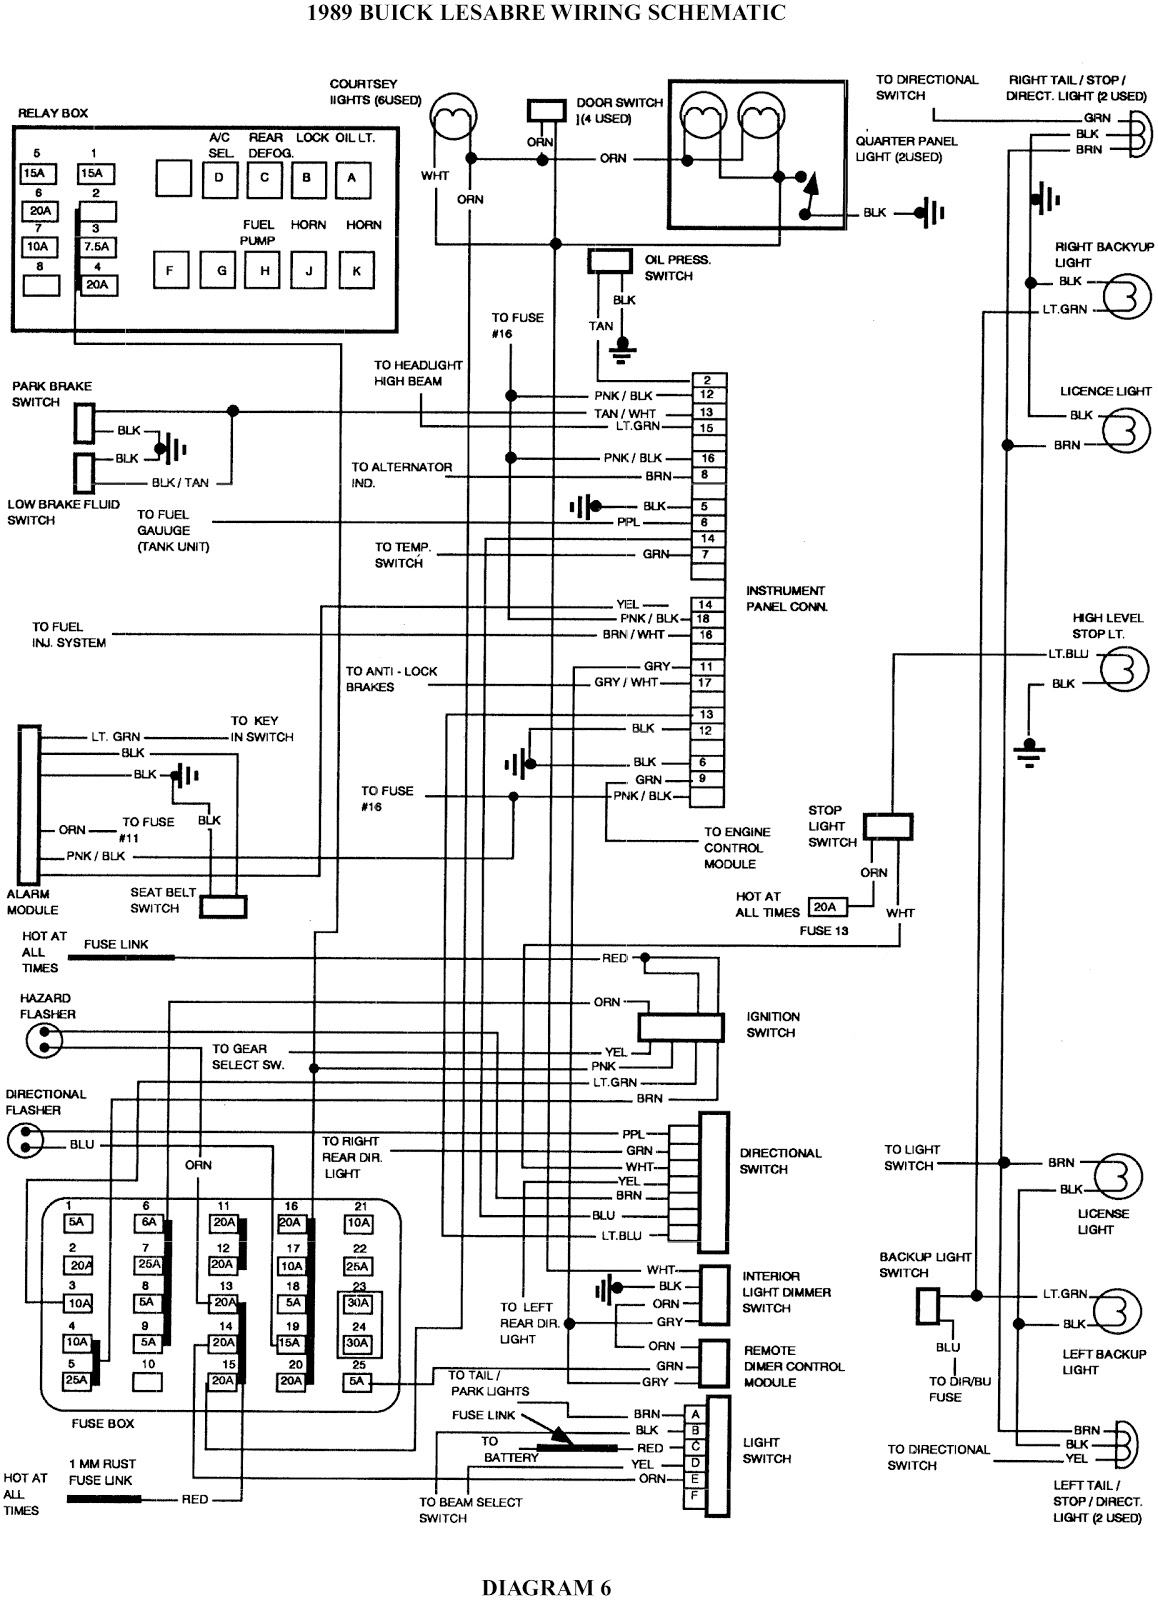 1969 buick lesabre ignition diagrama de cableado